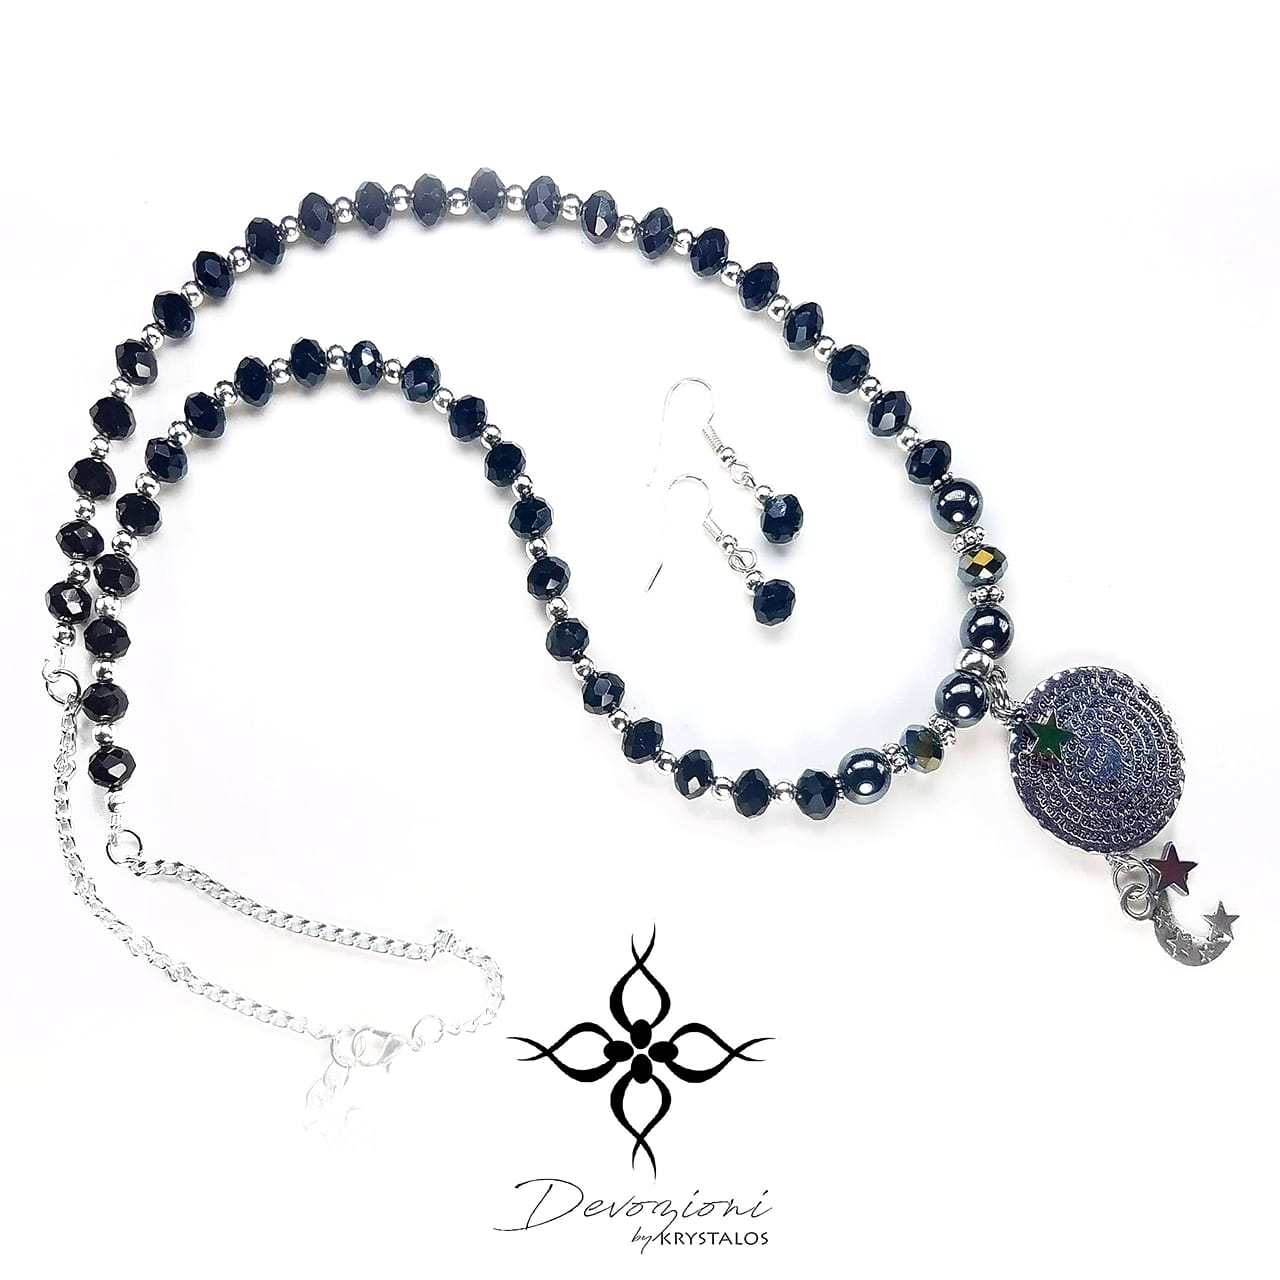 Our Father Nighttime Prayer (Black) - DEVOZIONI Set